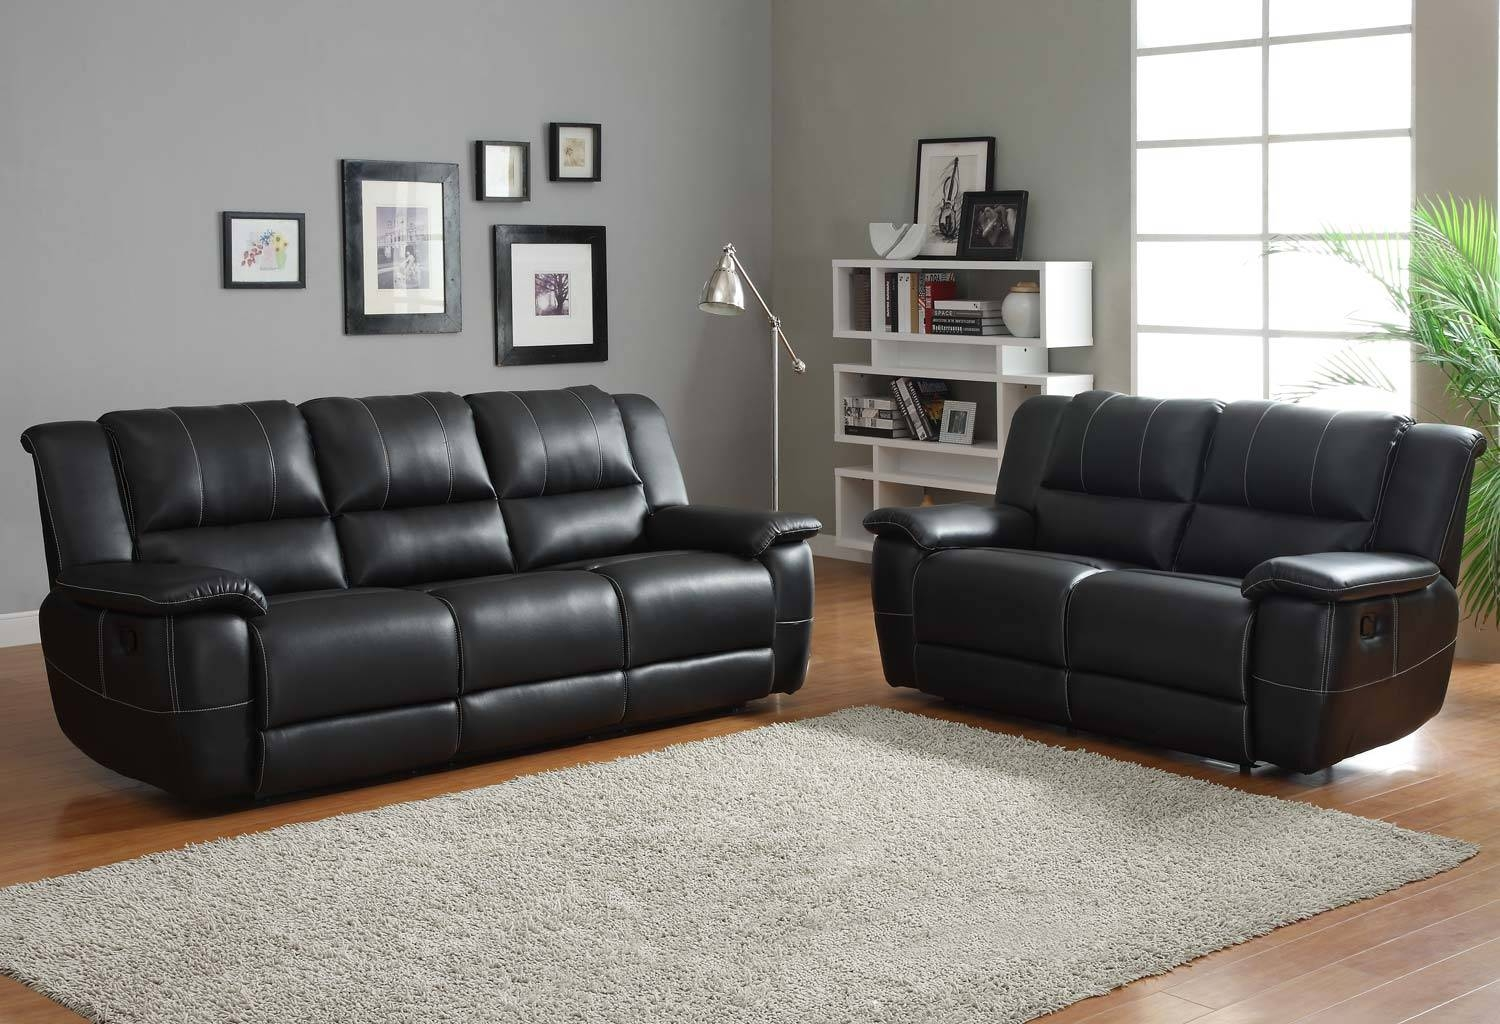 Homelegance Cantrell Reclining Sofa Set - Black - Bonded Leather with regard to Black Leather Sofas And Loveseat Sets (Image 11 of 15)